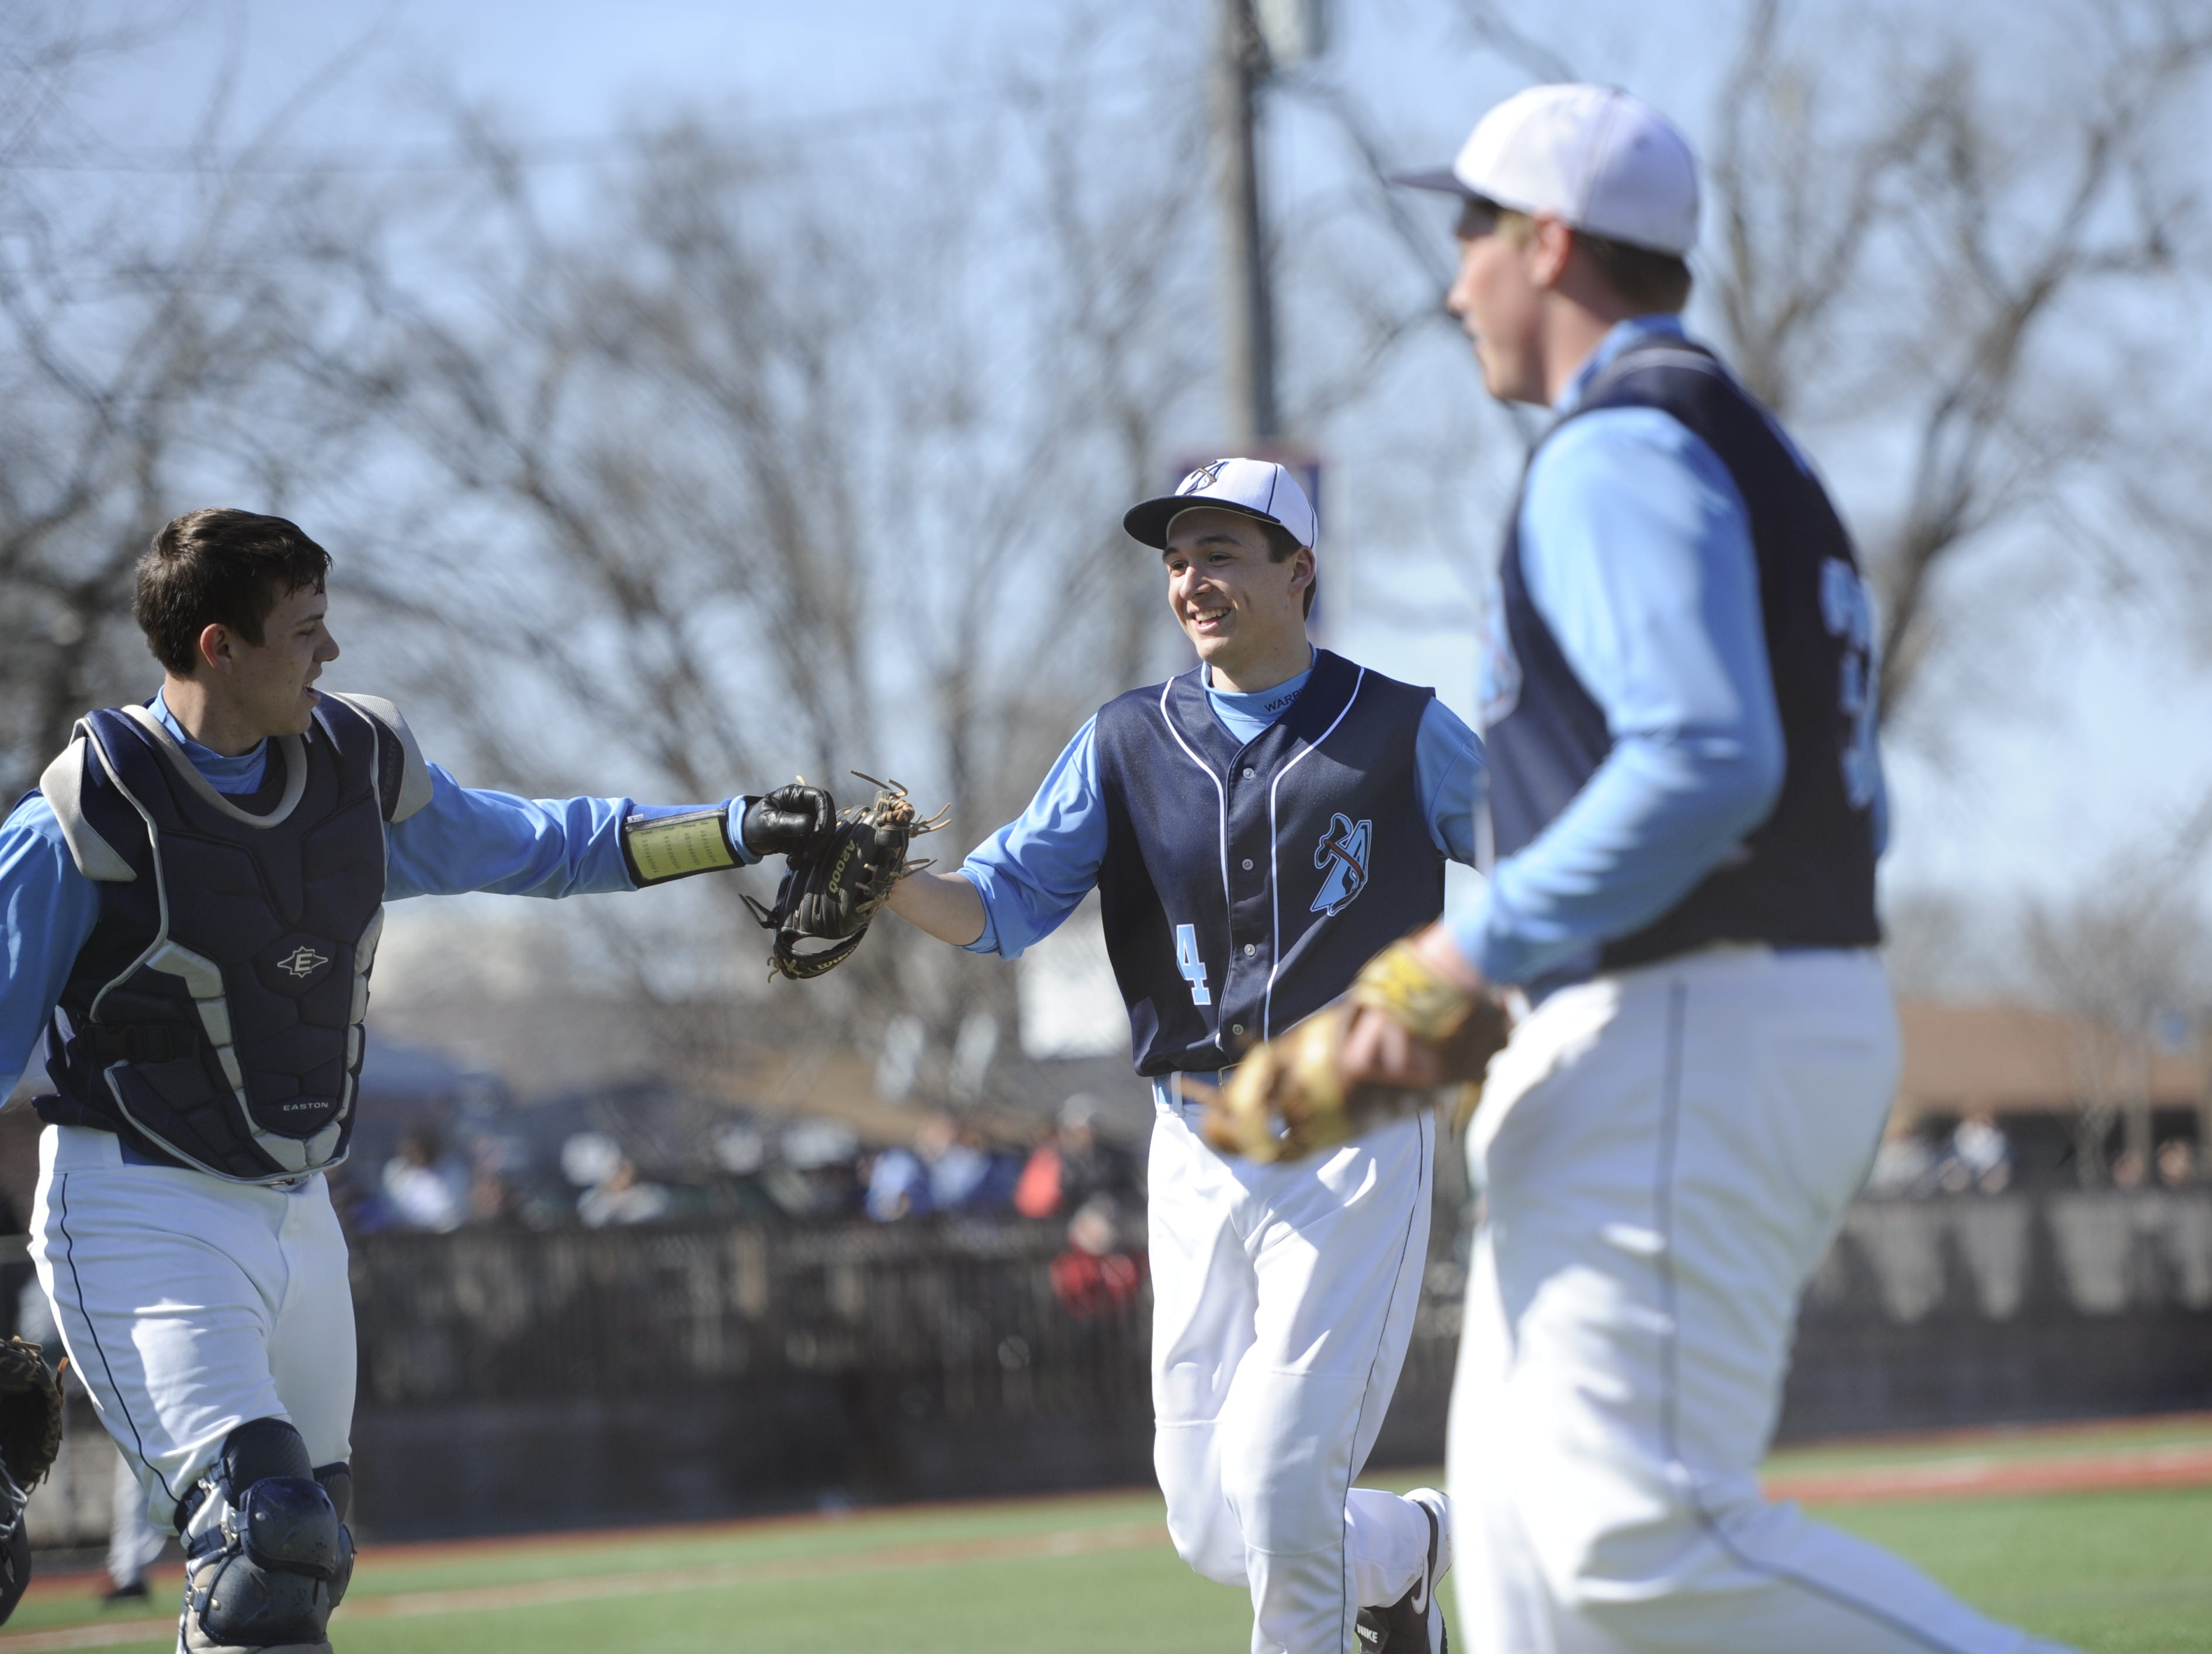 Adena High School baseball played against Sandusky Perkins at V.A. Memorial Stadium on Saturday. The final score was _.